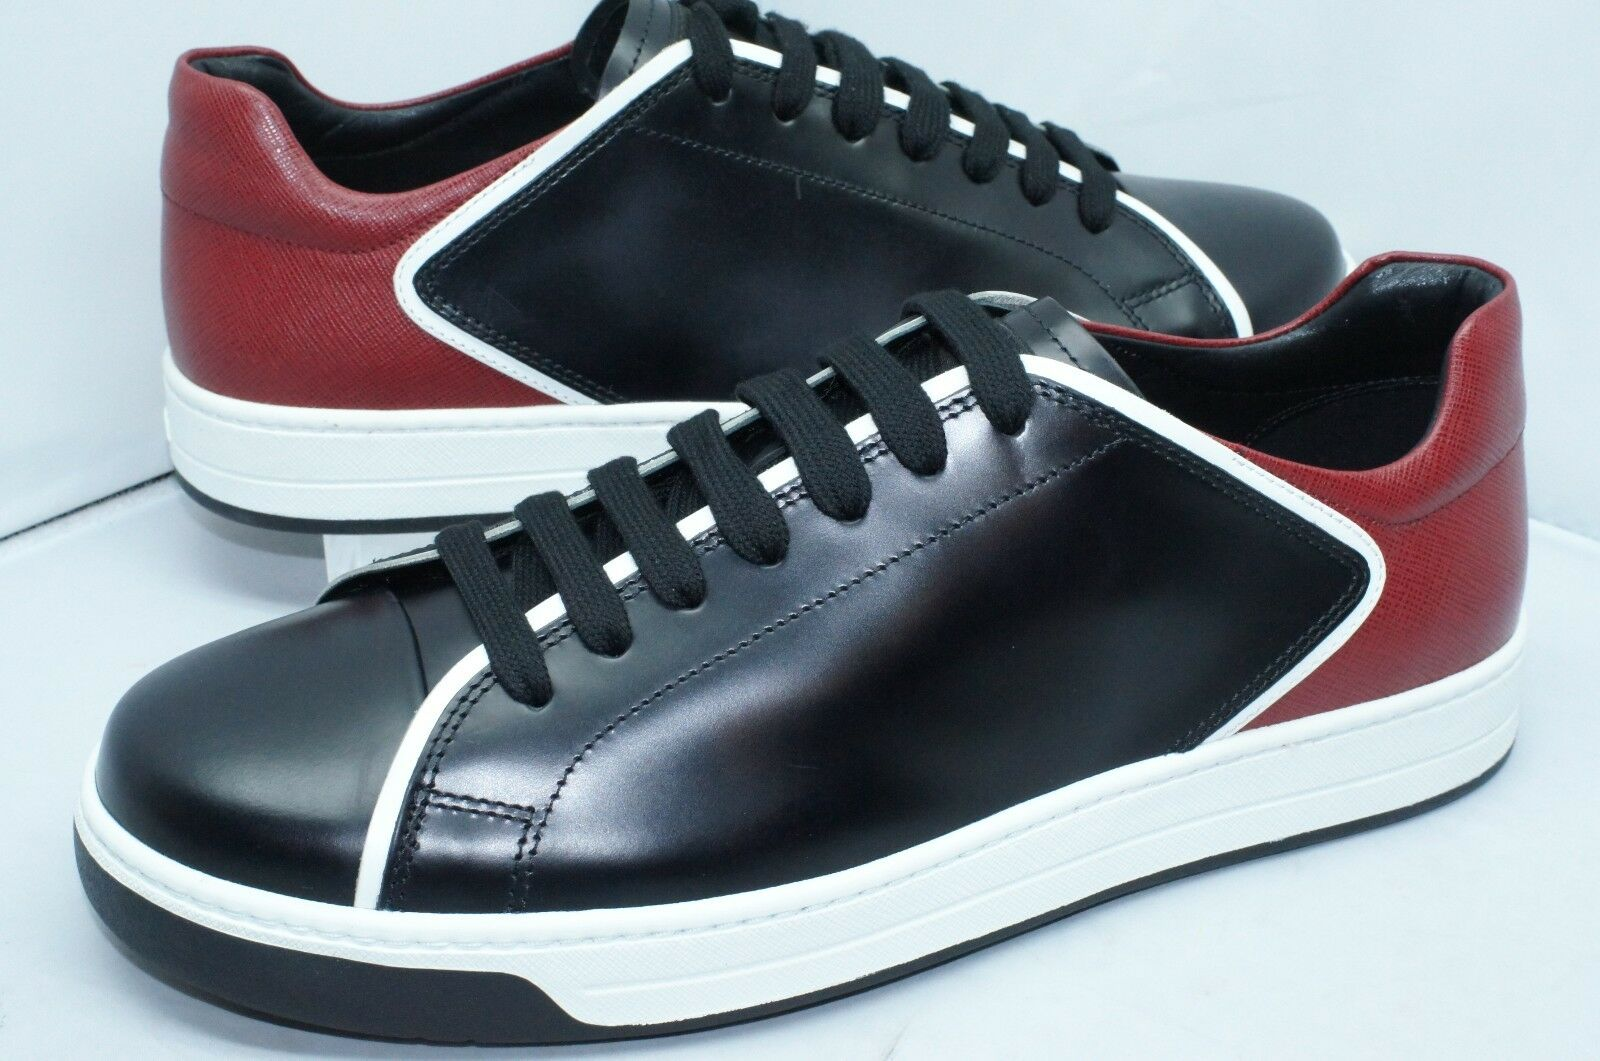 New Prada Mens Black Sneakers Shoes Size 10 Spazz Lux Saff Red Tennis Leather